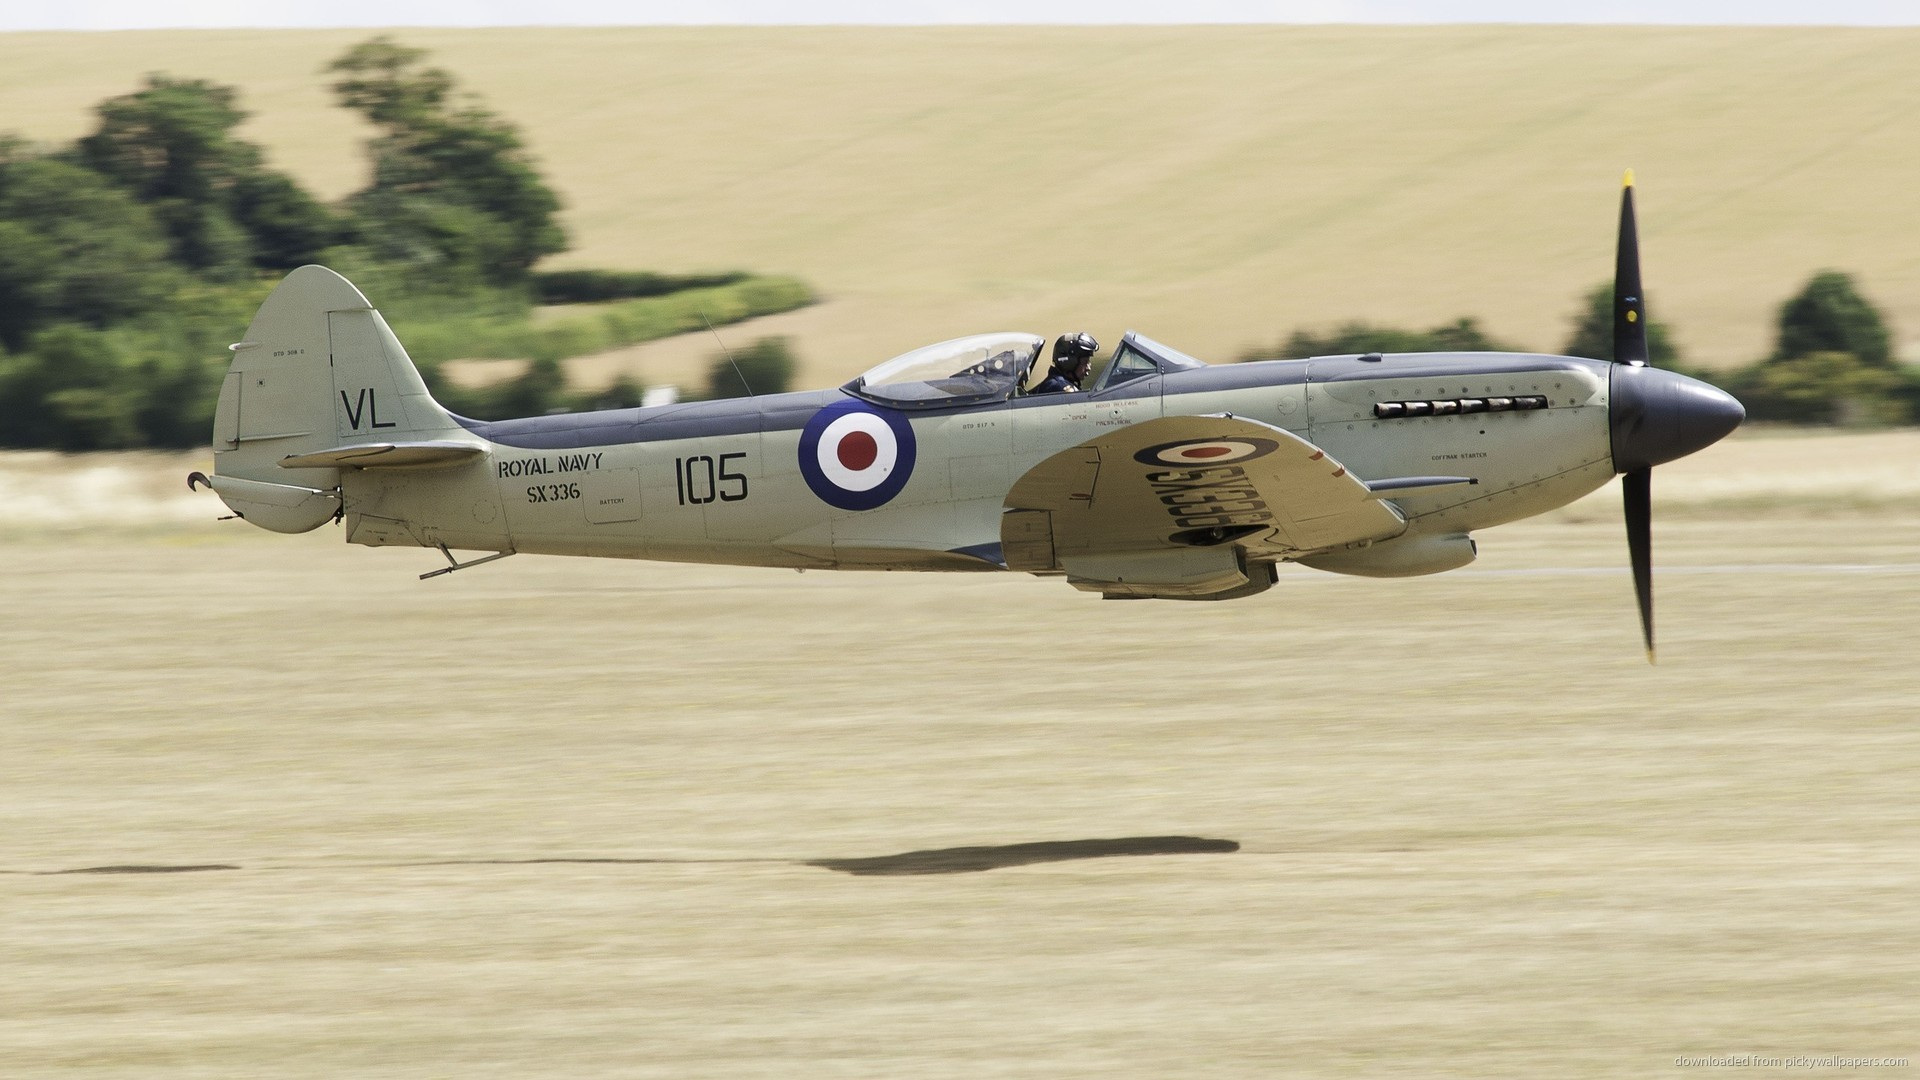 Royal Navy Oldschool Aircraft picture